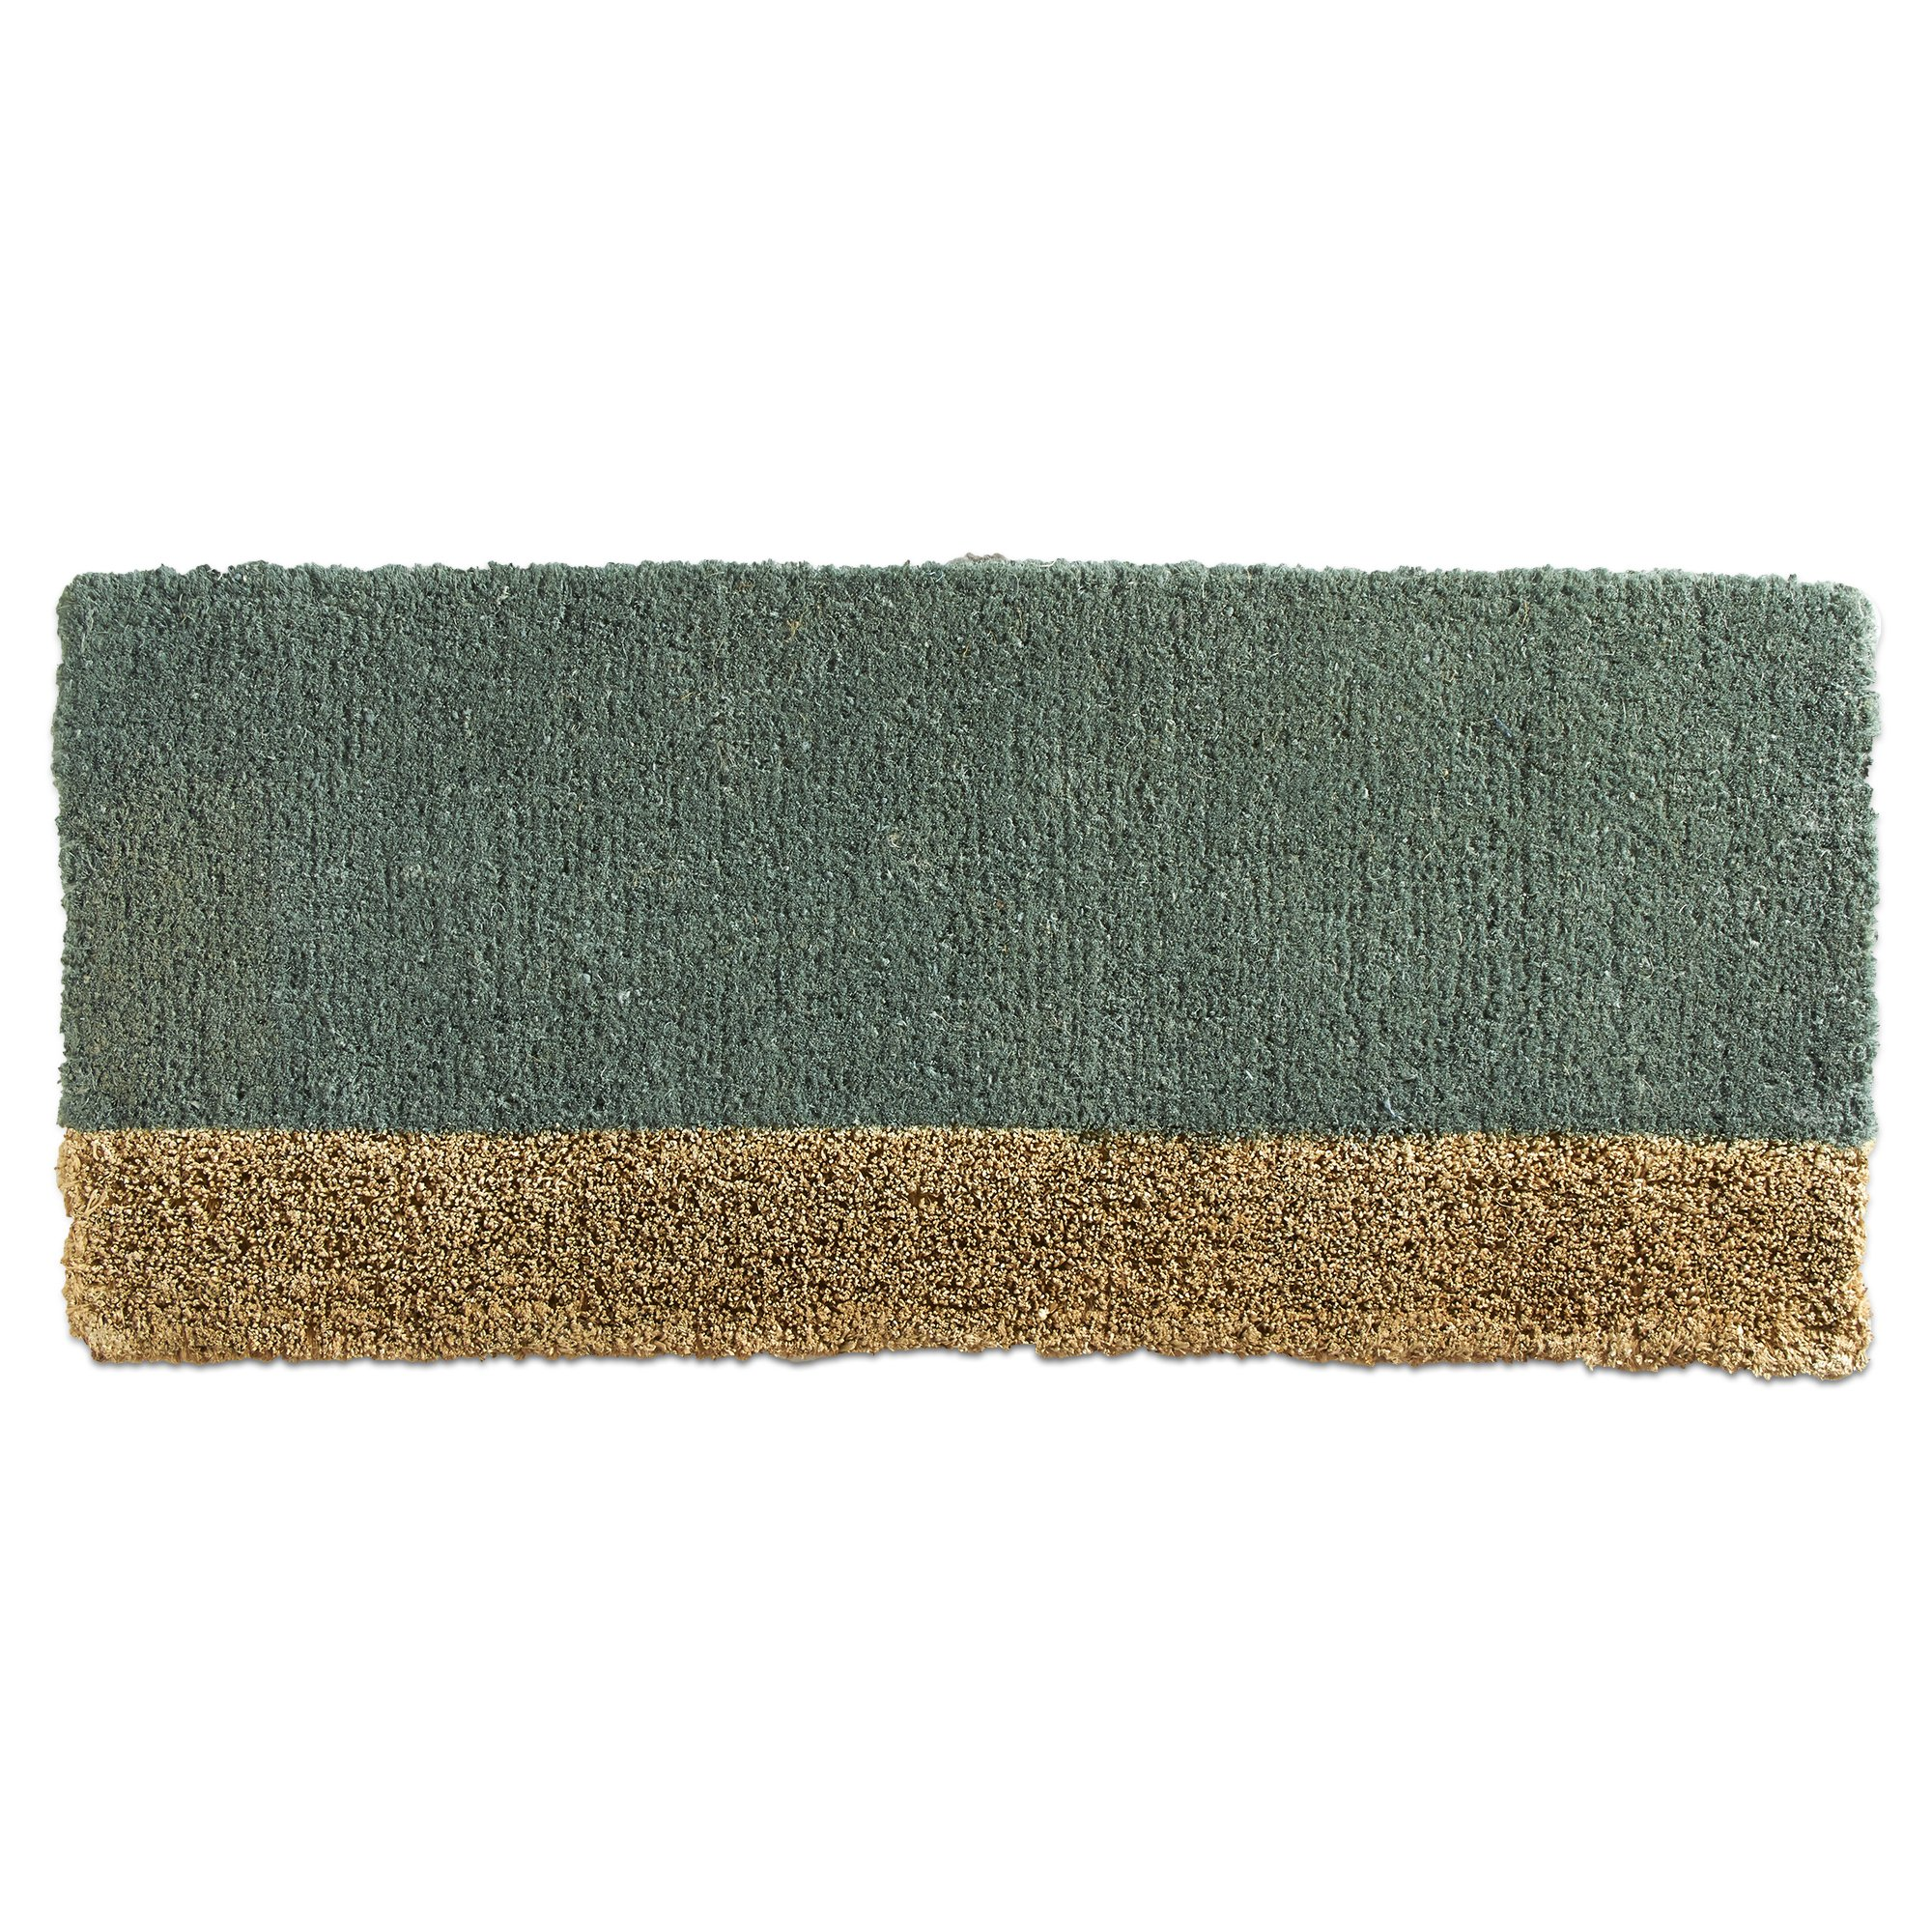 Tag -Two-Tone Estate Coir Mat, Decorative All-Season Mat for the Front Porch, Patio or Entryway, Dark Gray